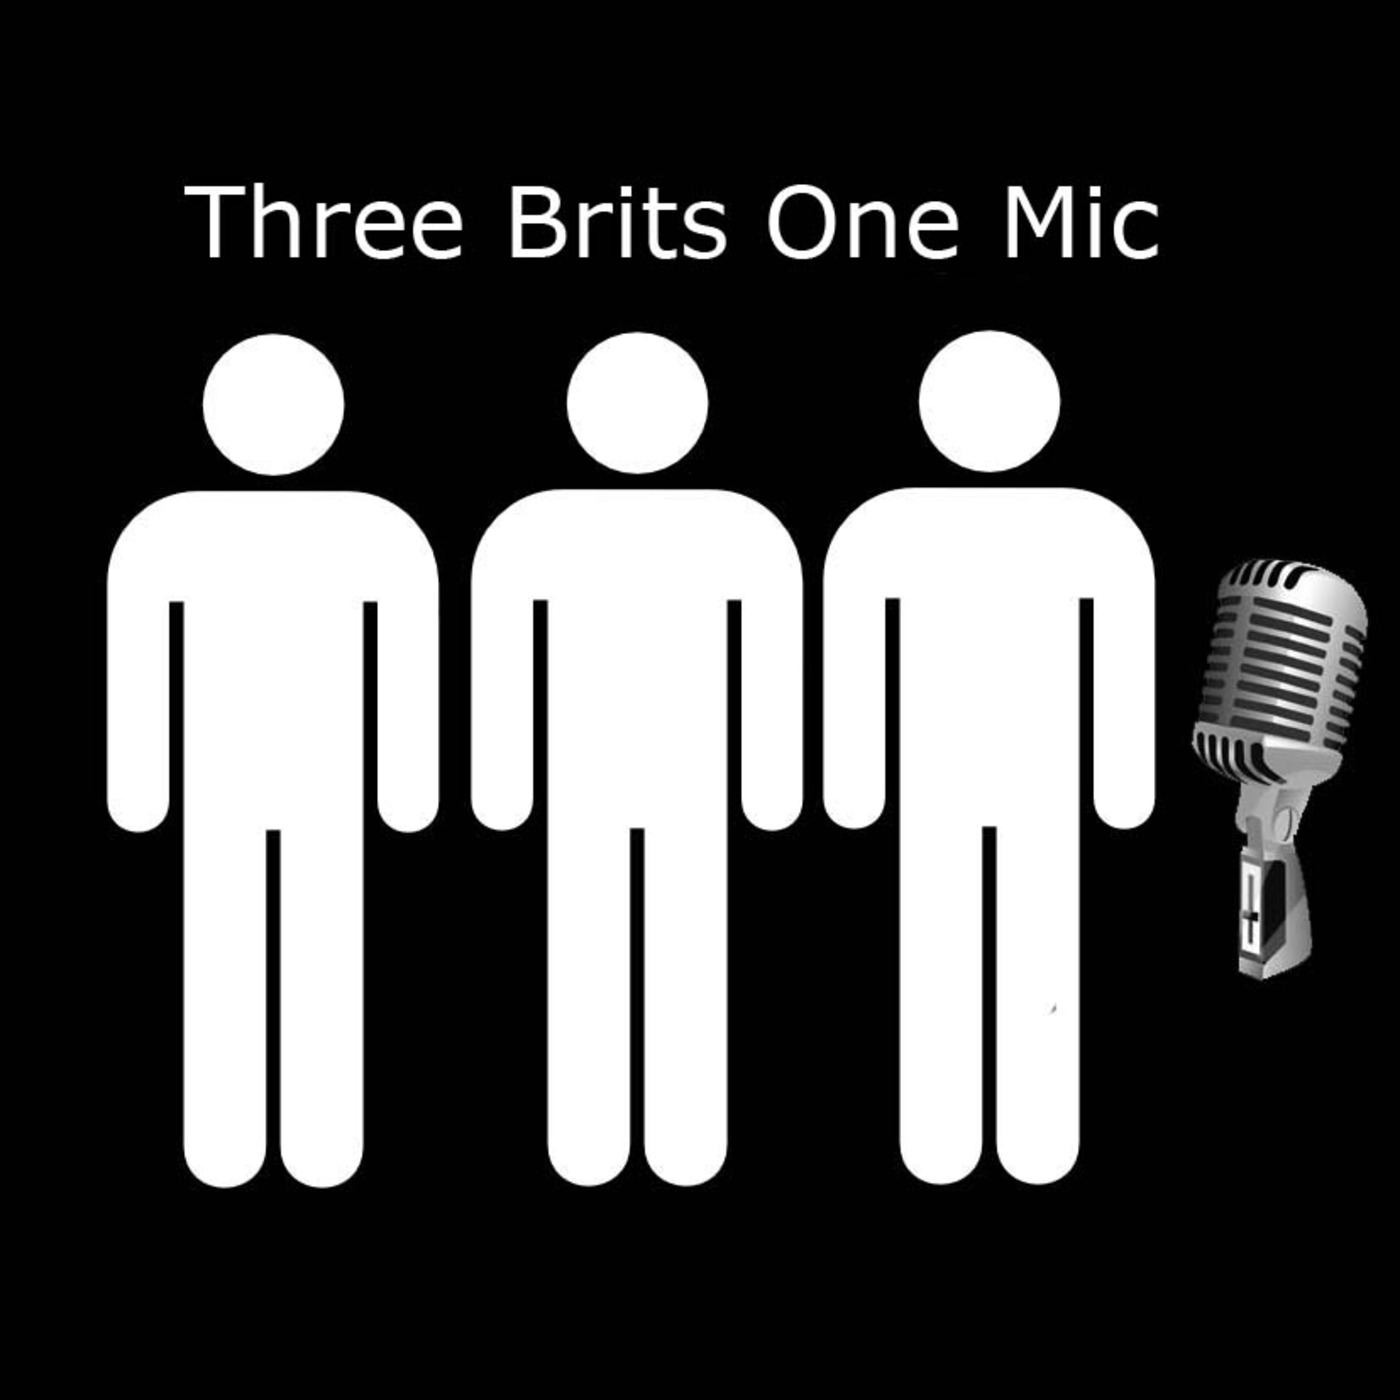 Three Brits One Mic